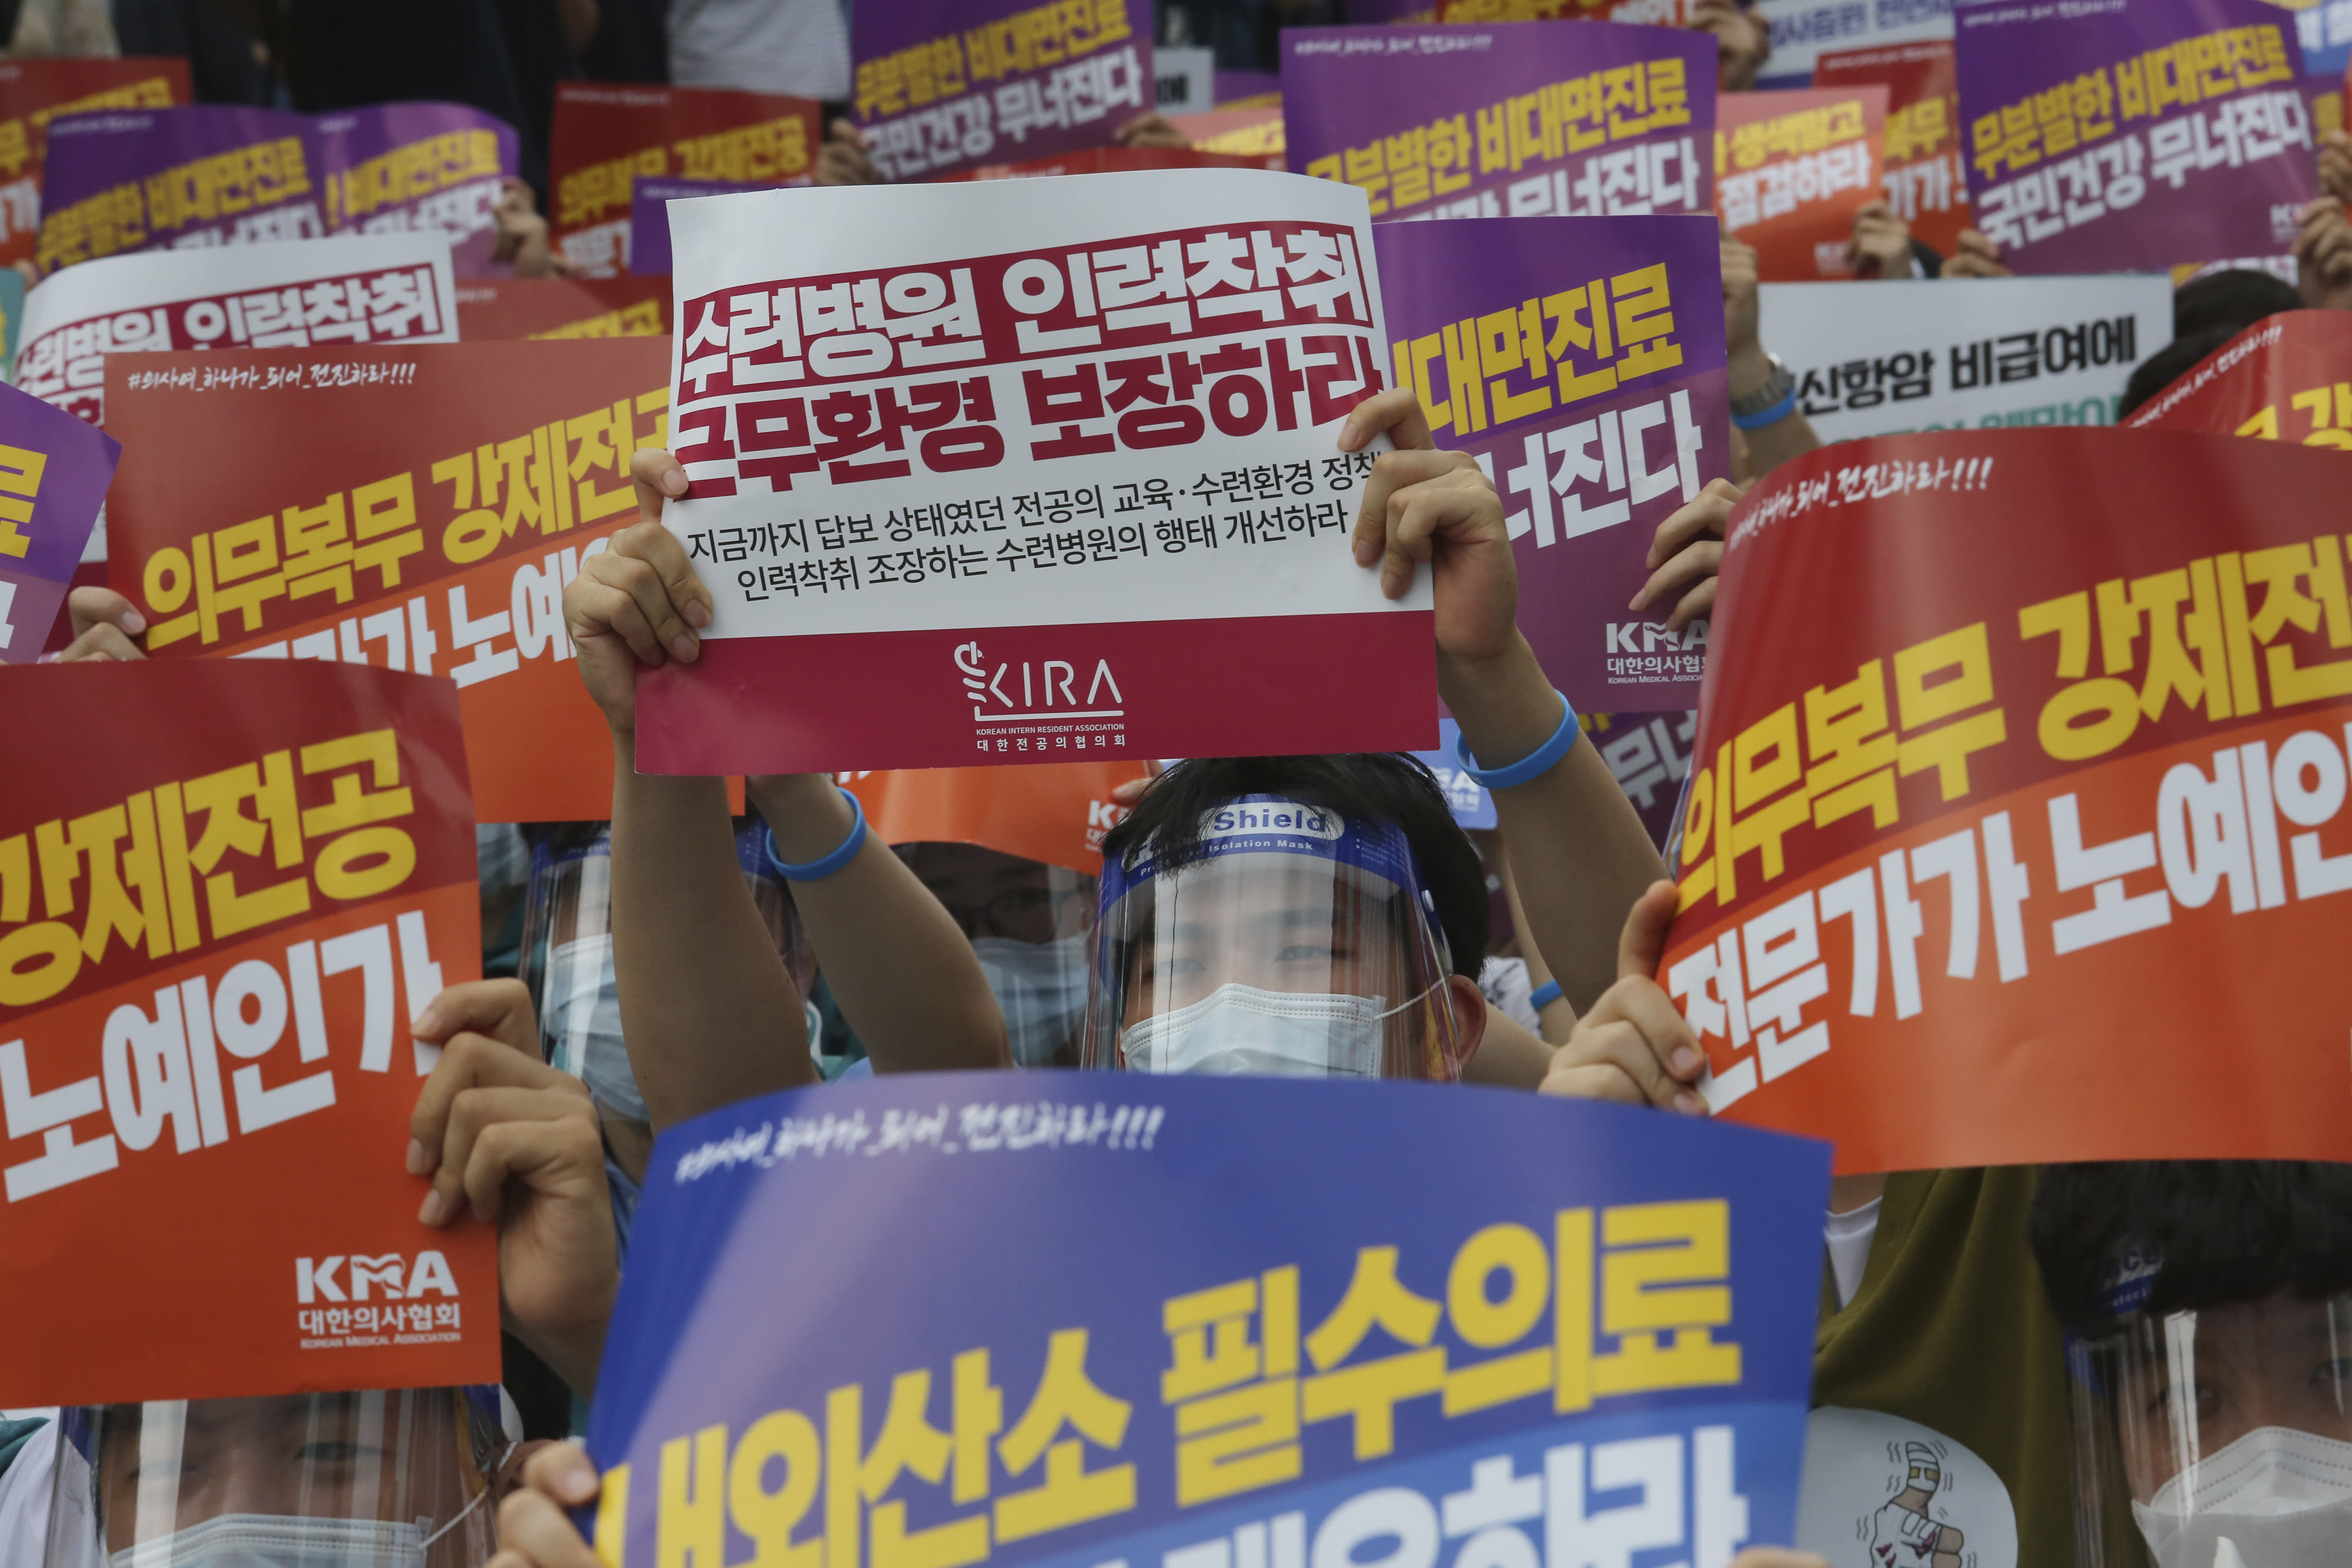 """A doctor holds up a placard during a rally against the government medical policy in Seoul, South Korea, Friday, Aug. 14, 2020. Thousands of doctors in South Korea began a strike Friday in protest of government medical policy, causing concerns about treatment of patients amid the coronavirus pandemic. The signs read: """"Ensure working conditions."""" (AP Photo/Ahn Young-joon)"""